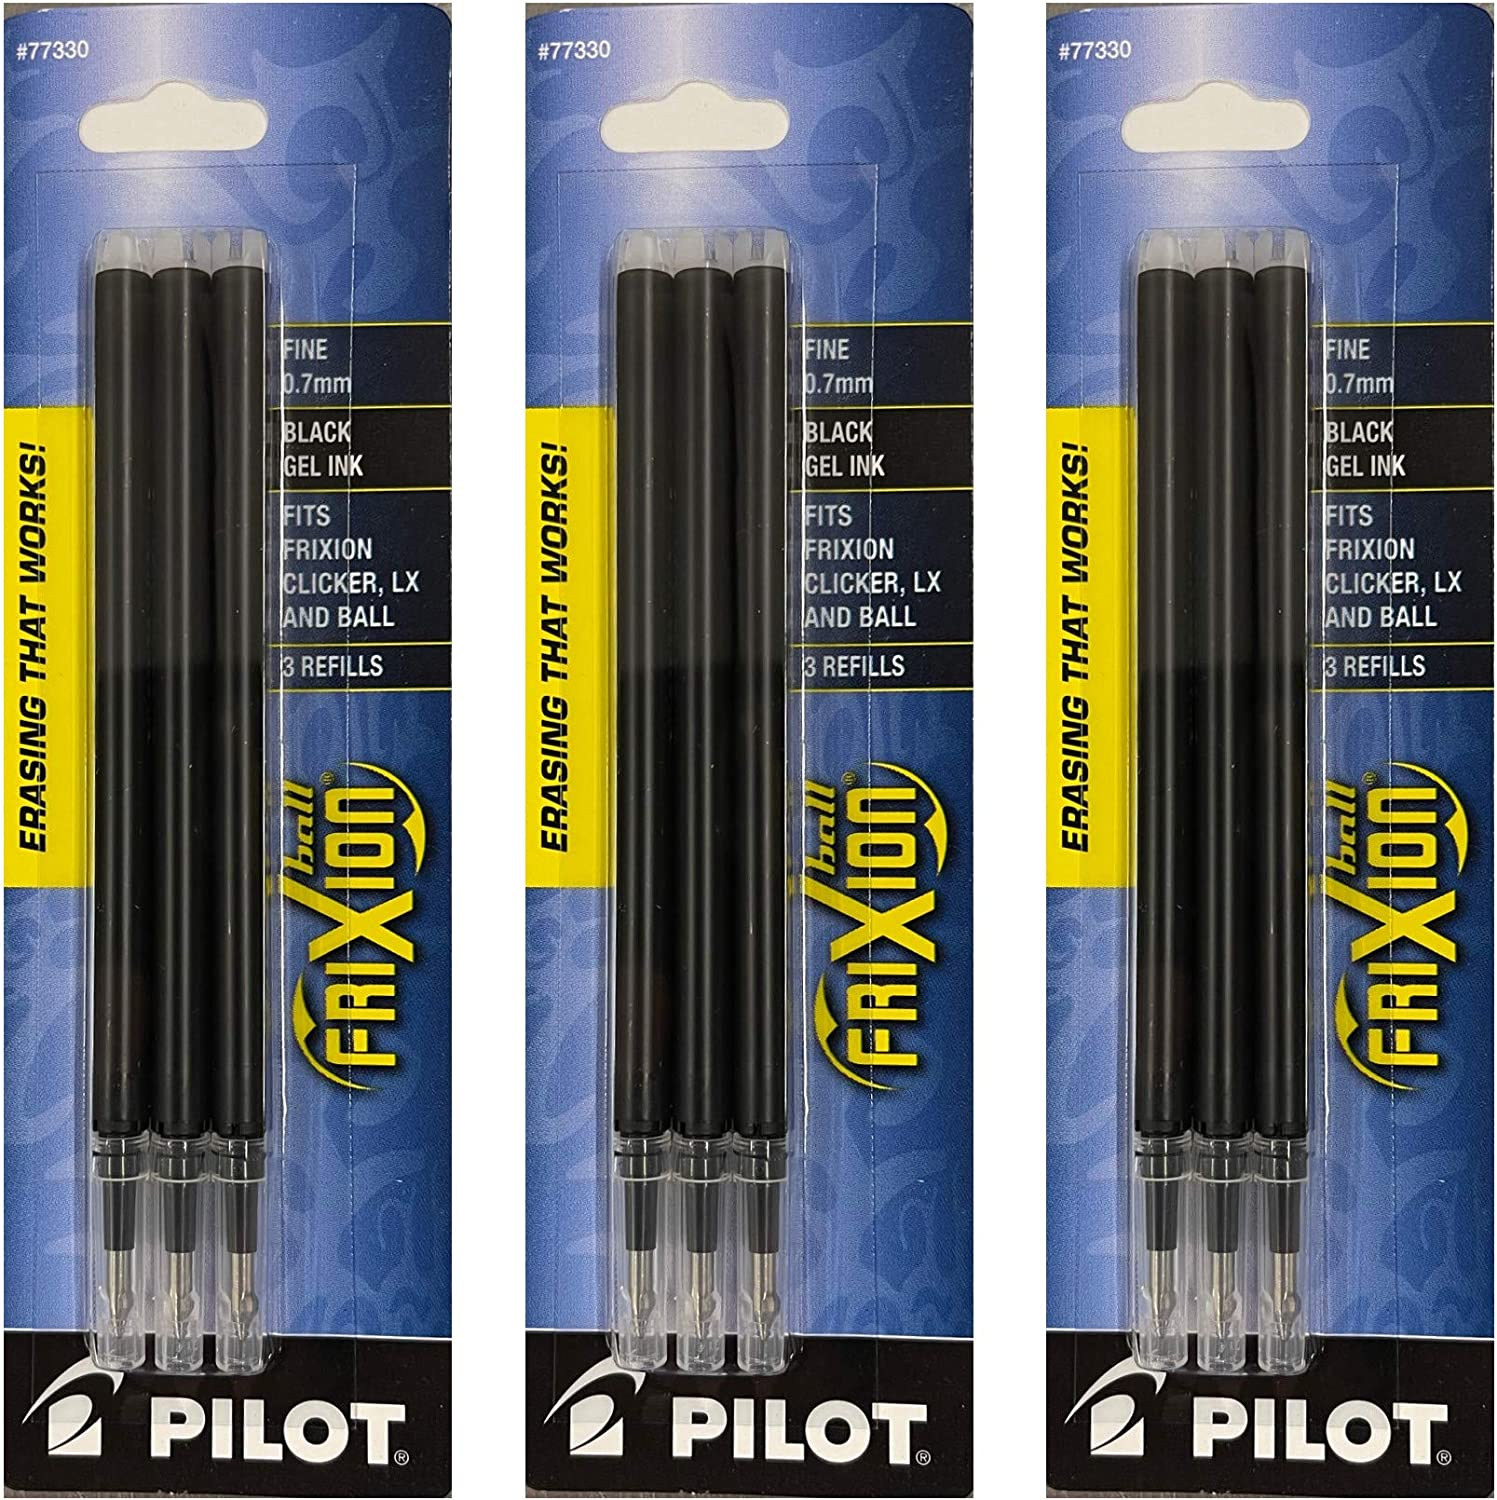 PIL77330 - trend rank Pilot FriXion Pen Ink Gel Refills Limited Special Price